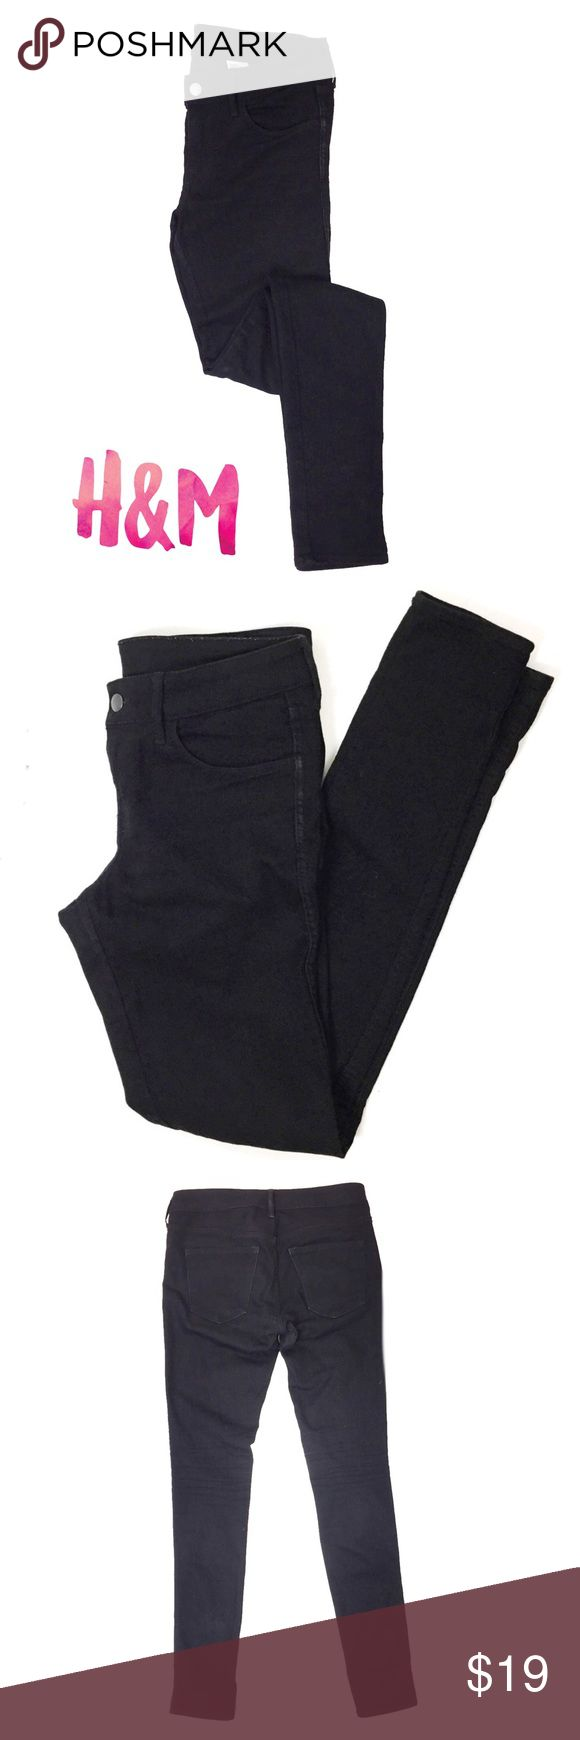 "H&M Low Waist Skinny Black Jeans Women's SZ 28 Great gently used condition. Black super skinny jeans by H&M. Very flattering fit.  Waist 30"" Hips 30"" Inseam 32"" H&M Jeans Skinny"